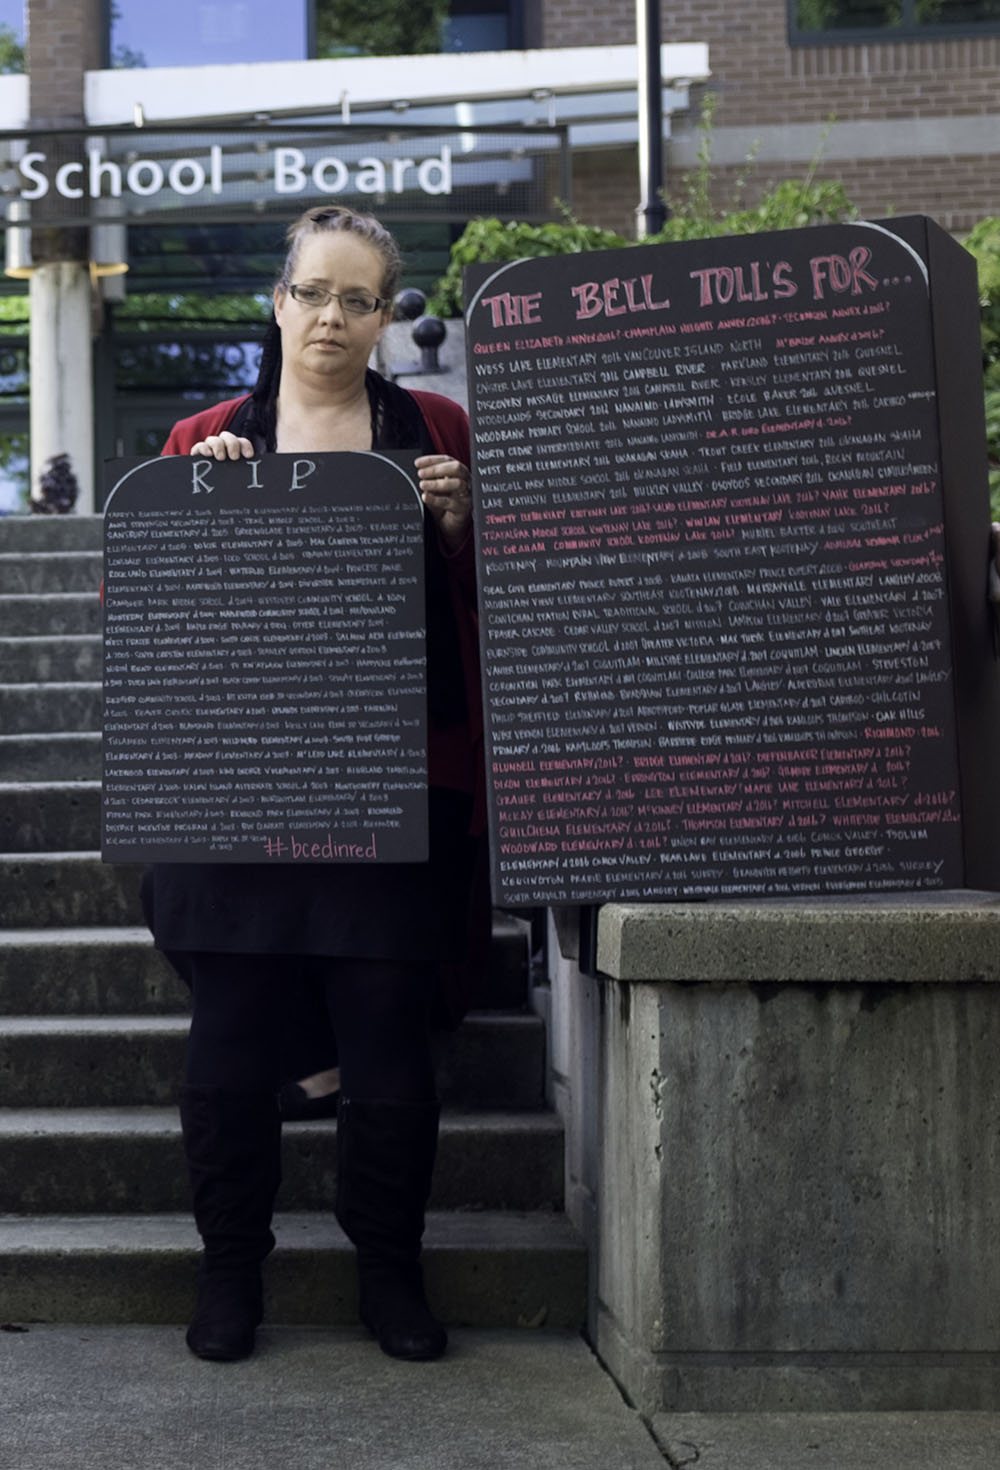 Protesters had made up gravestones listing all the names of the schools read aloud (Jenni Sheppard)